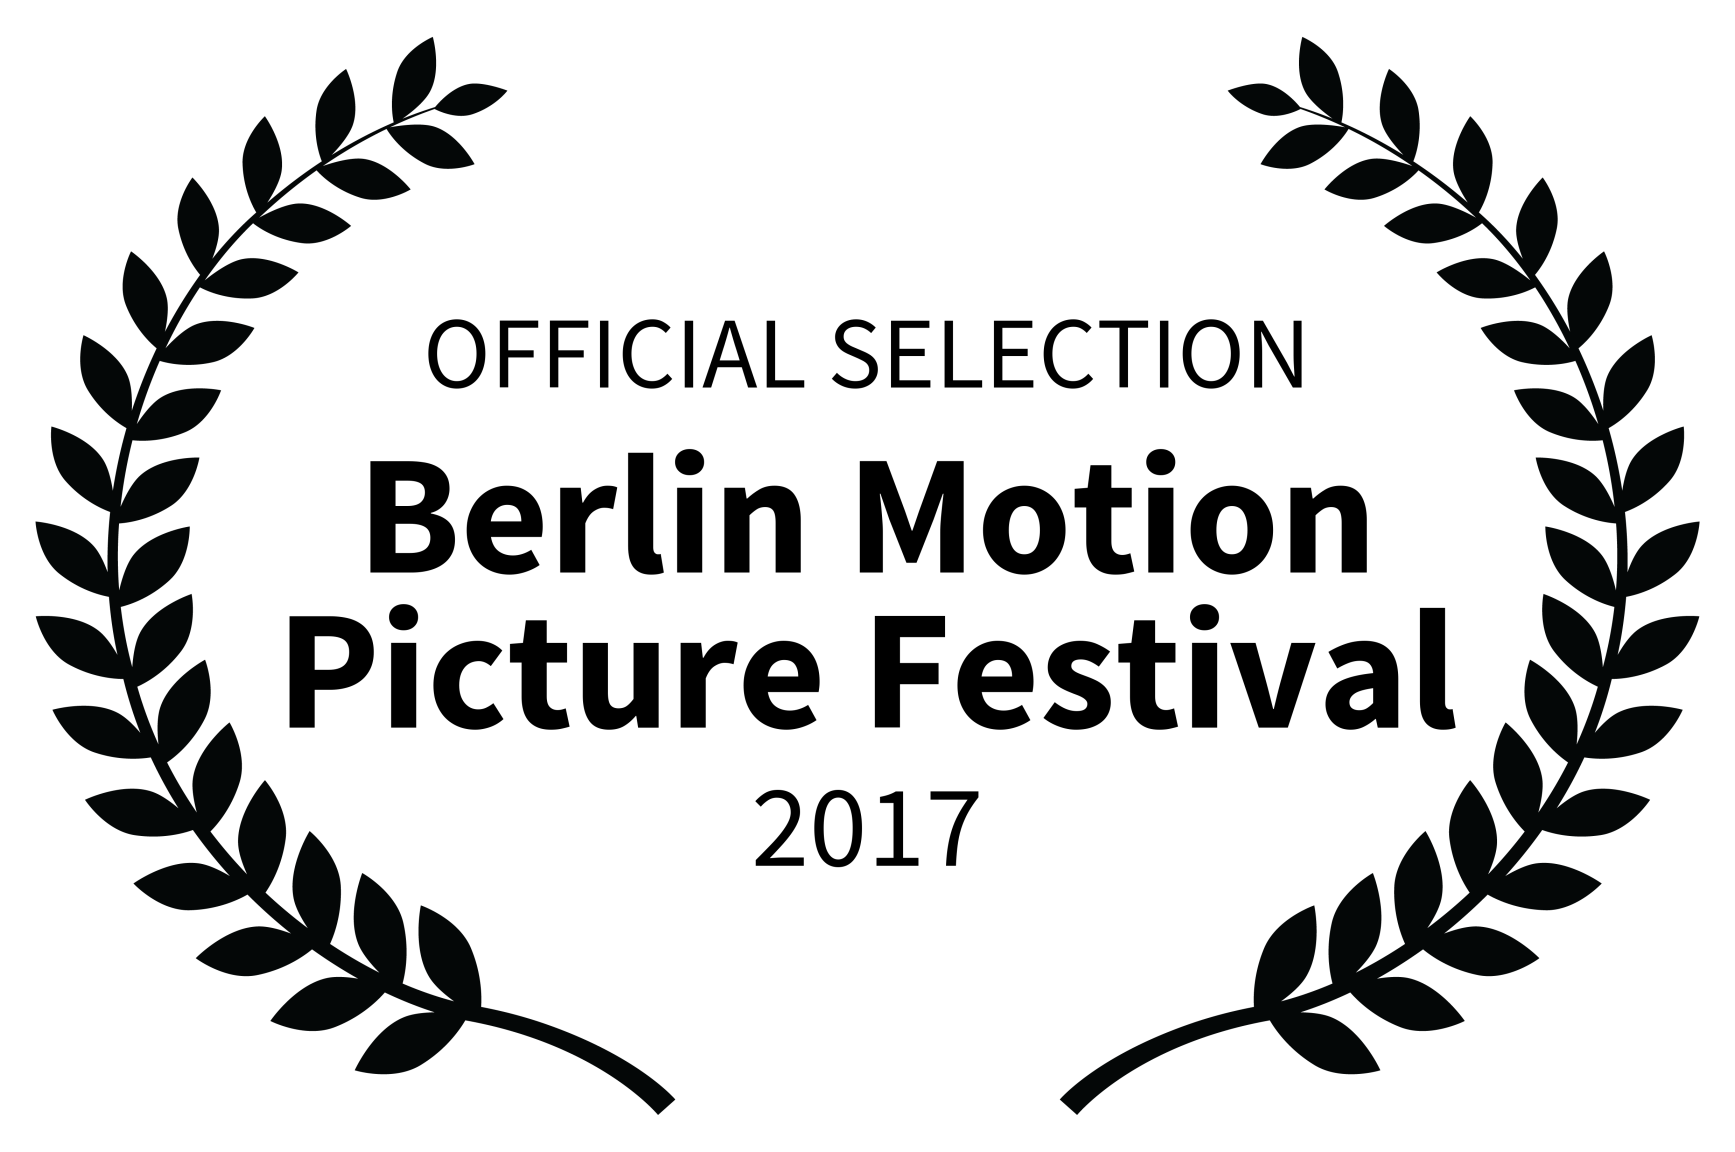 OFFICIAL SELECTION - Berlin Motion Pictu